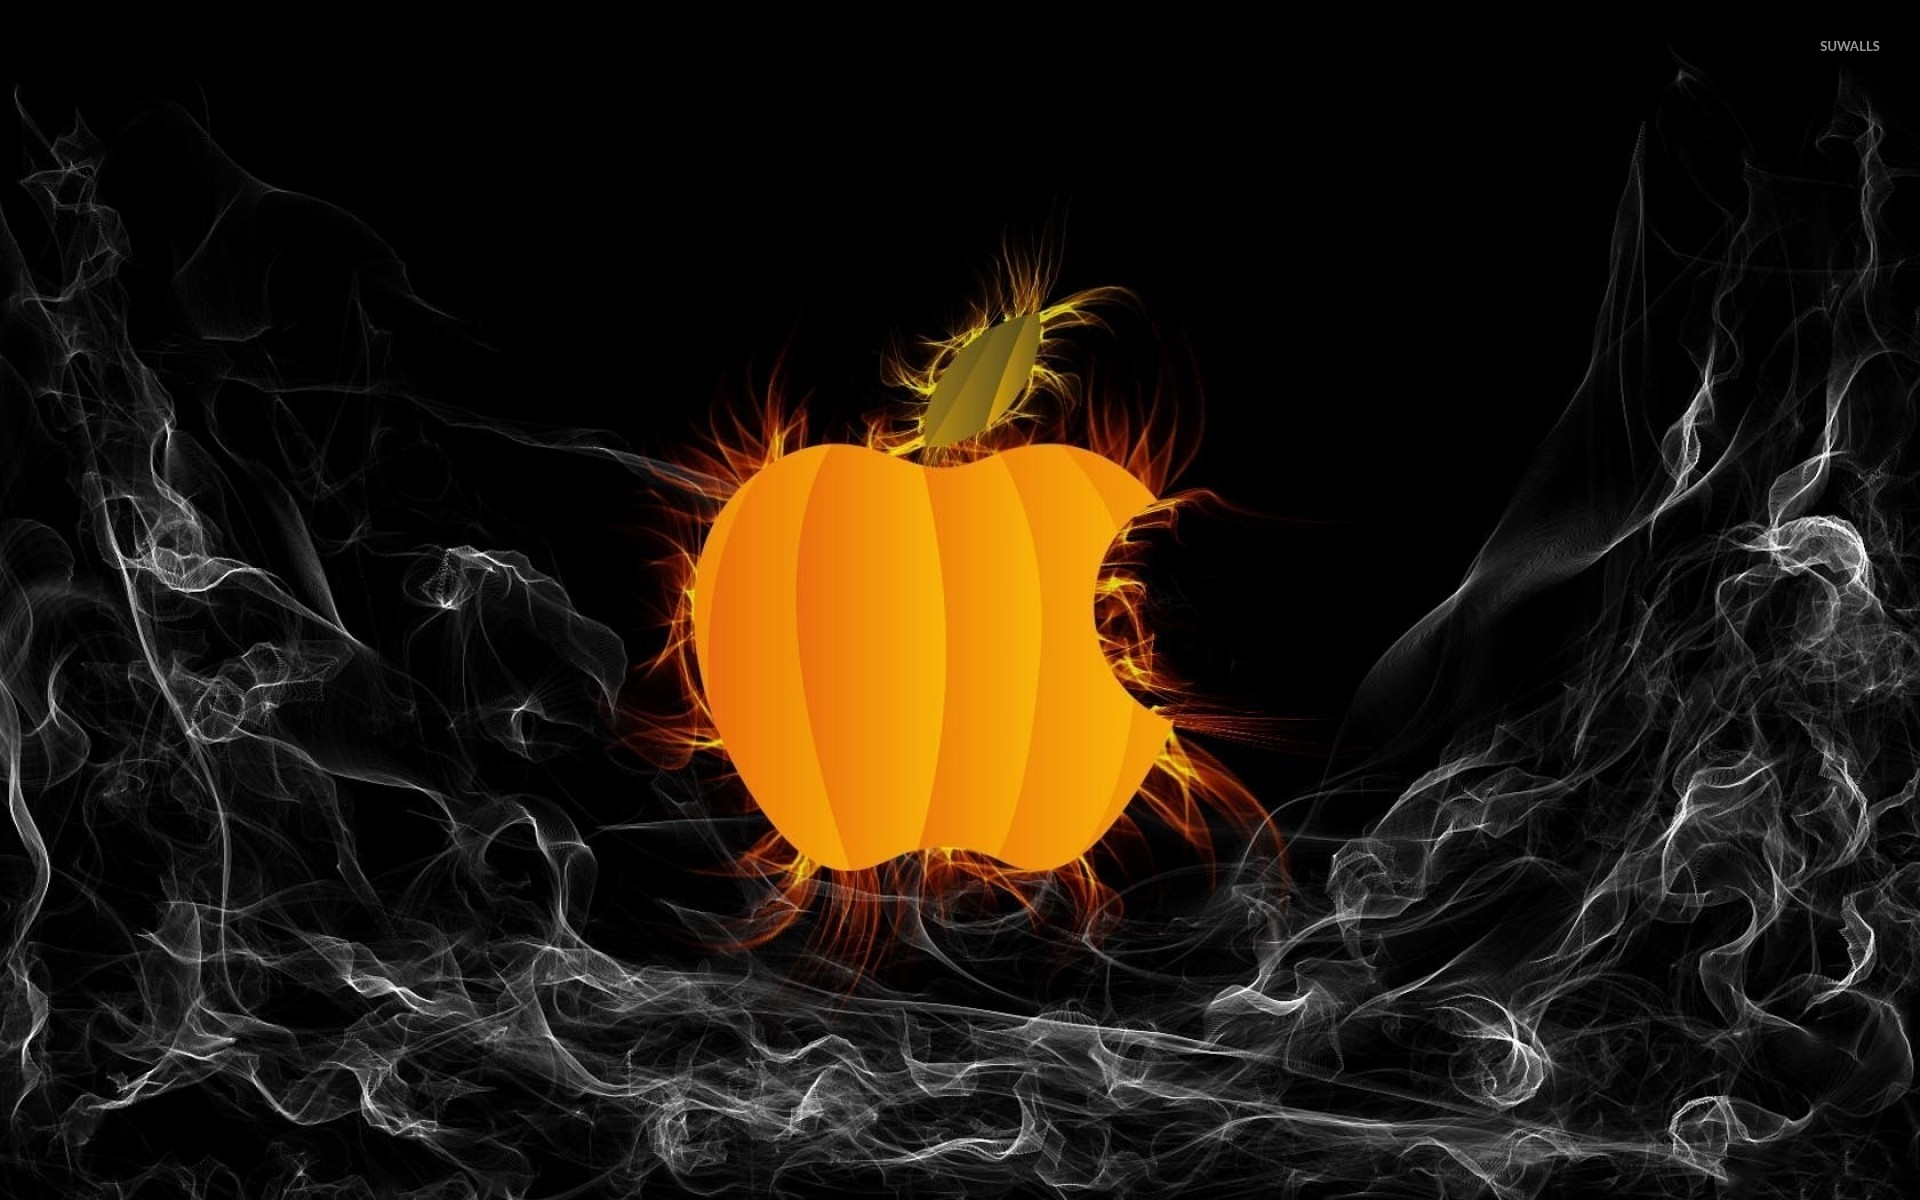 Good Wallpaper Macbook Halloween - pumpkin-apple-logo-24453-1920x1200  Photograph_718813.jpg